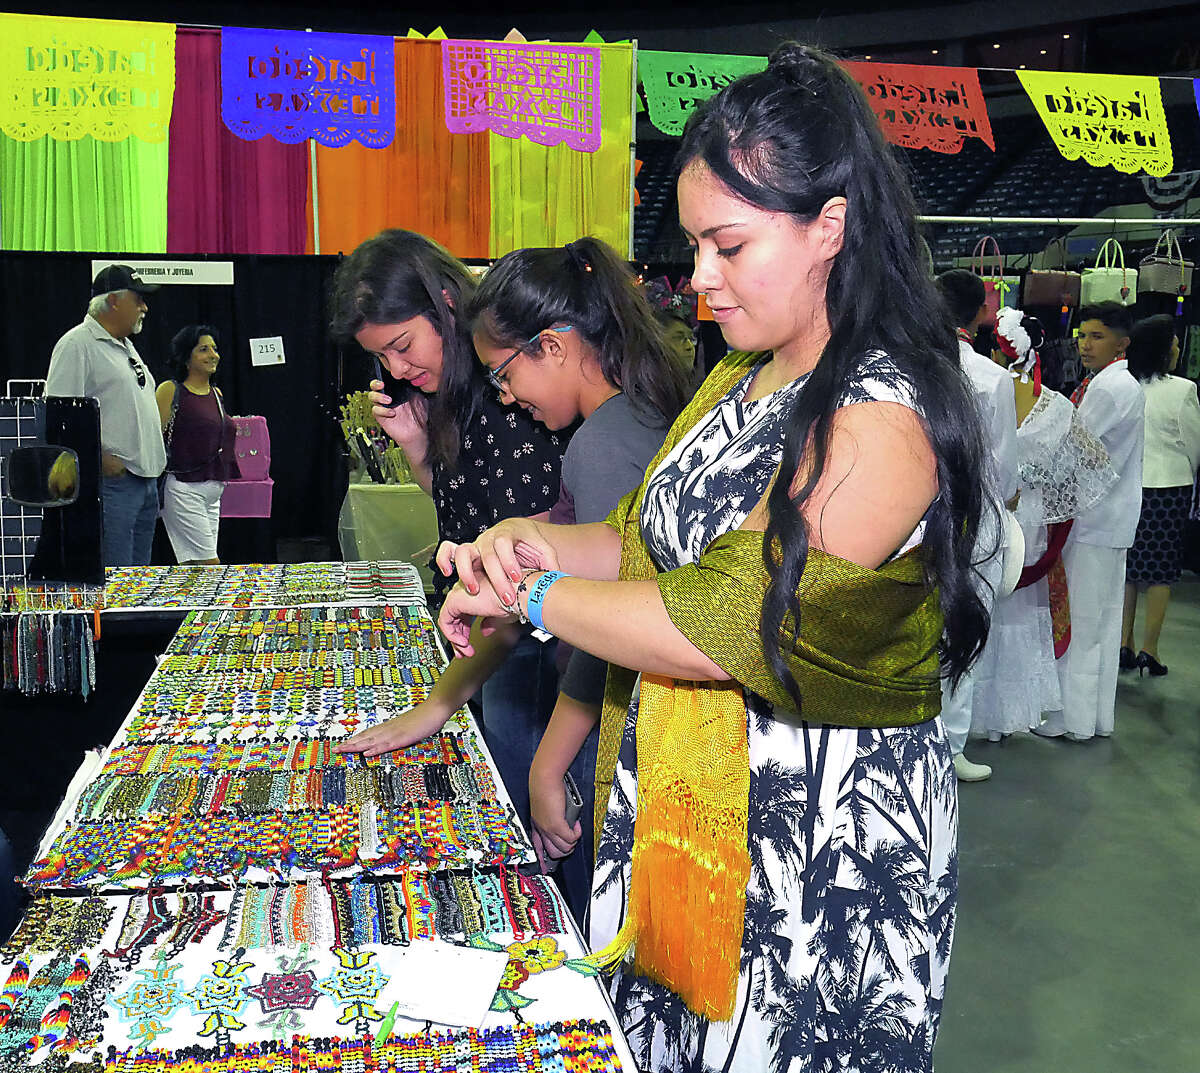 Miriam Davila shops for a bracelet at the 16th Annual Laredo International Sister Cities Festival, Friday, July 13, 2018 at the Sames Auto Arena. There will be arts and crafts, leather goods, jewelry, pottery, food, music, clothing and folkloric dances and presentations at the event free event through Sunday.